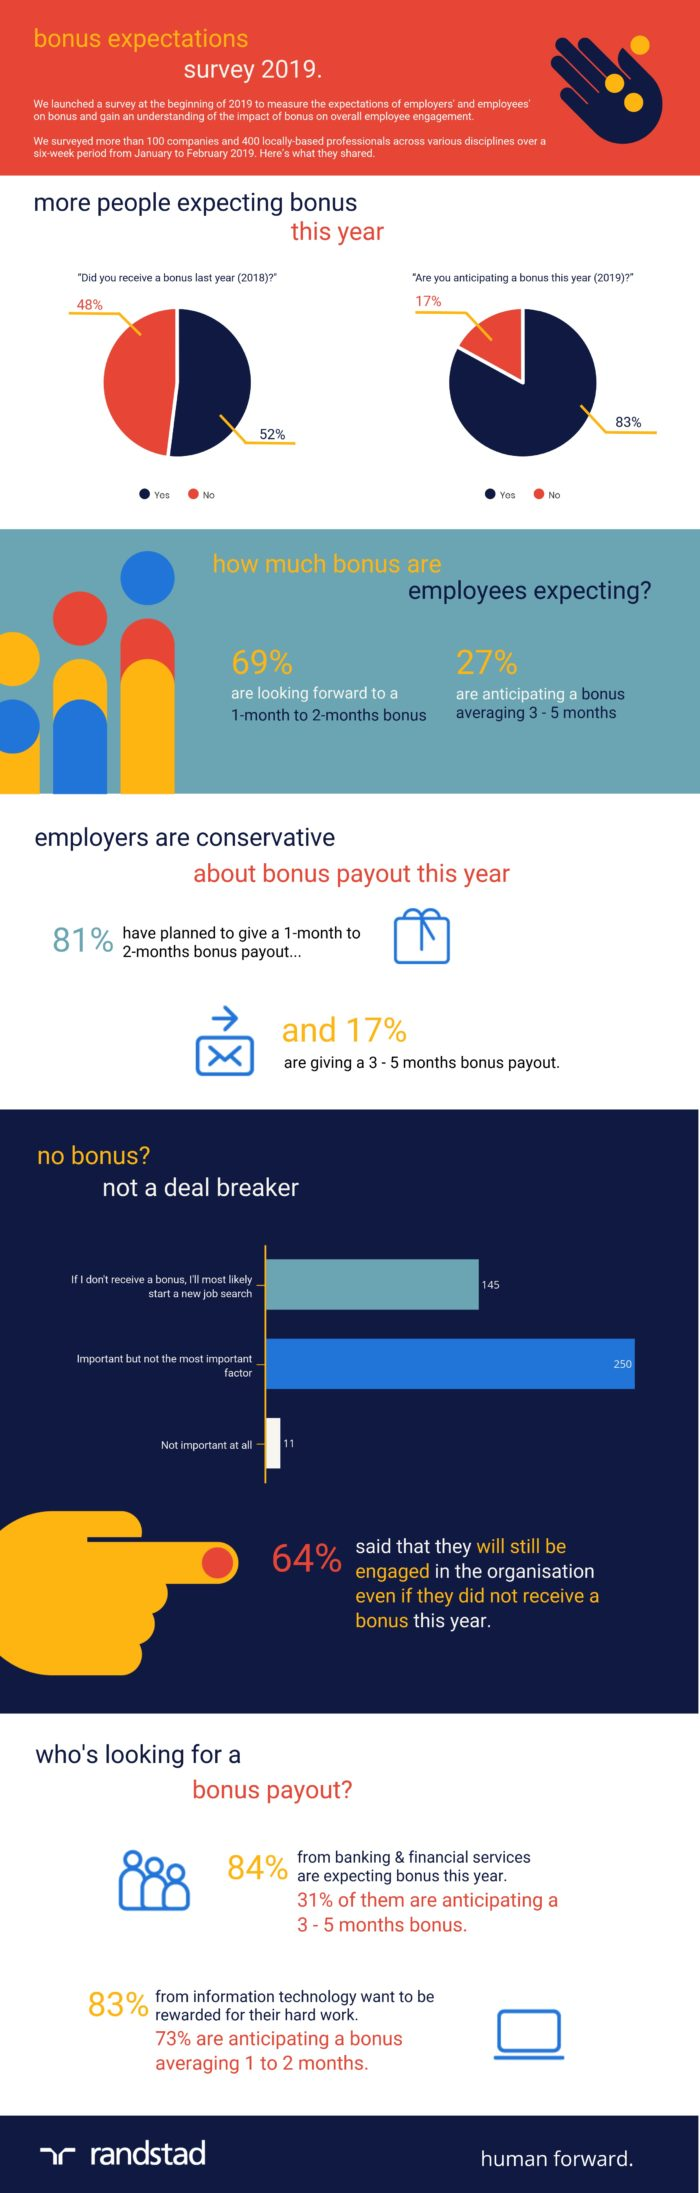 2019-bonus-expectations-survey-singapore-infographic